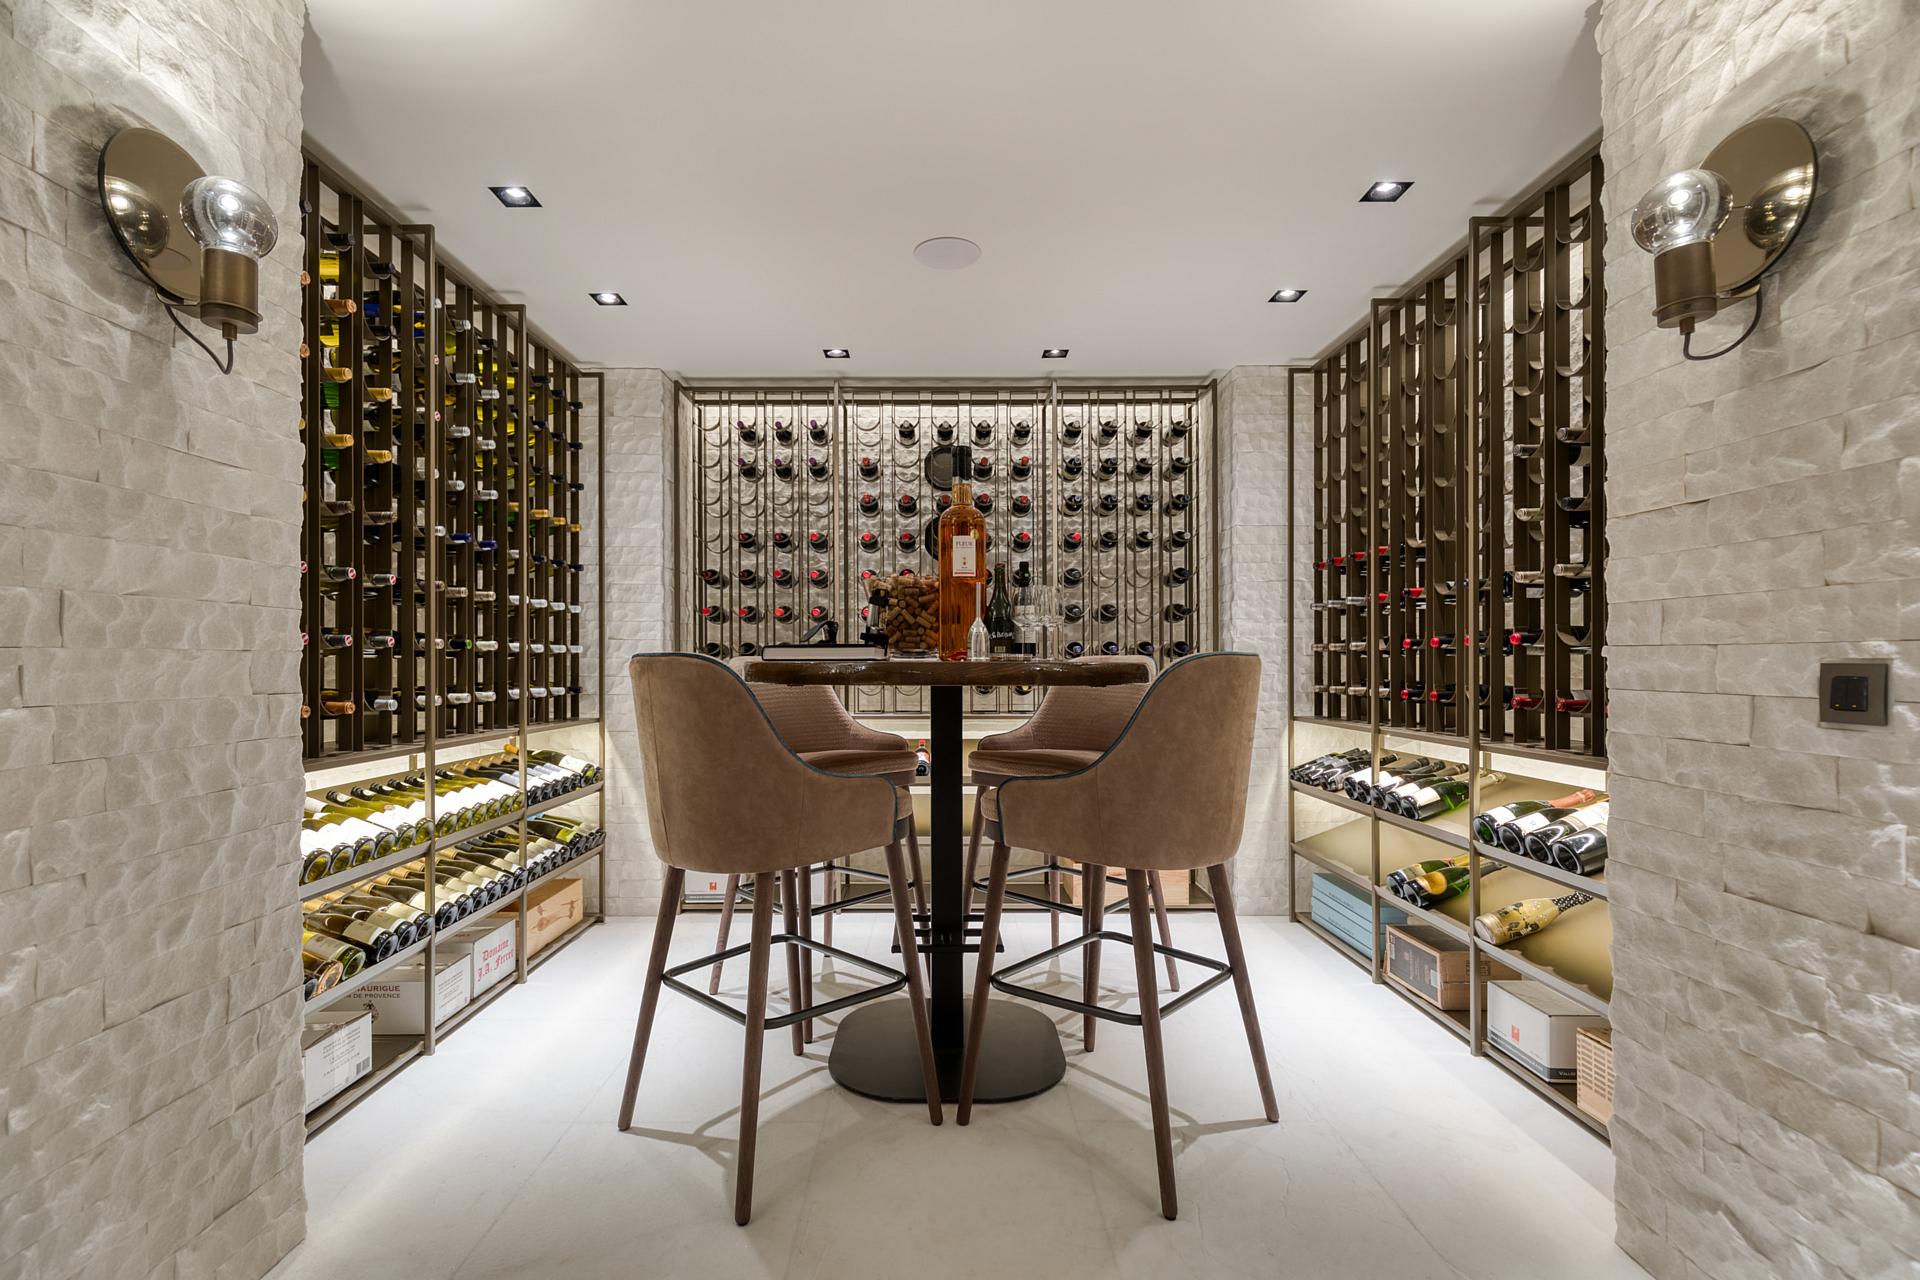 Wine cellar with cast floor and custom brazen cooled wine racks surrounded by white stone